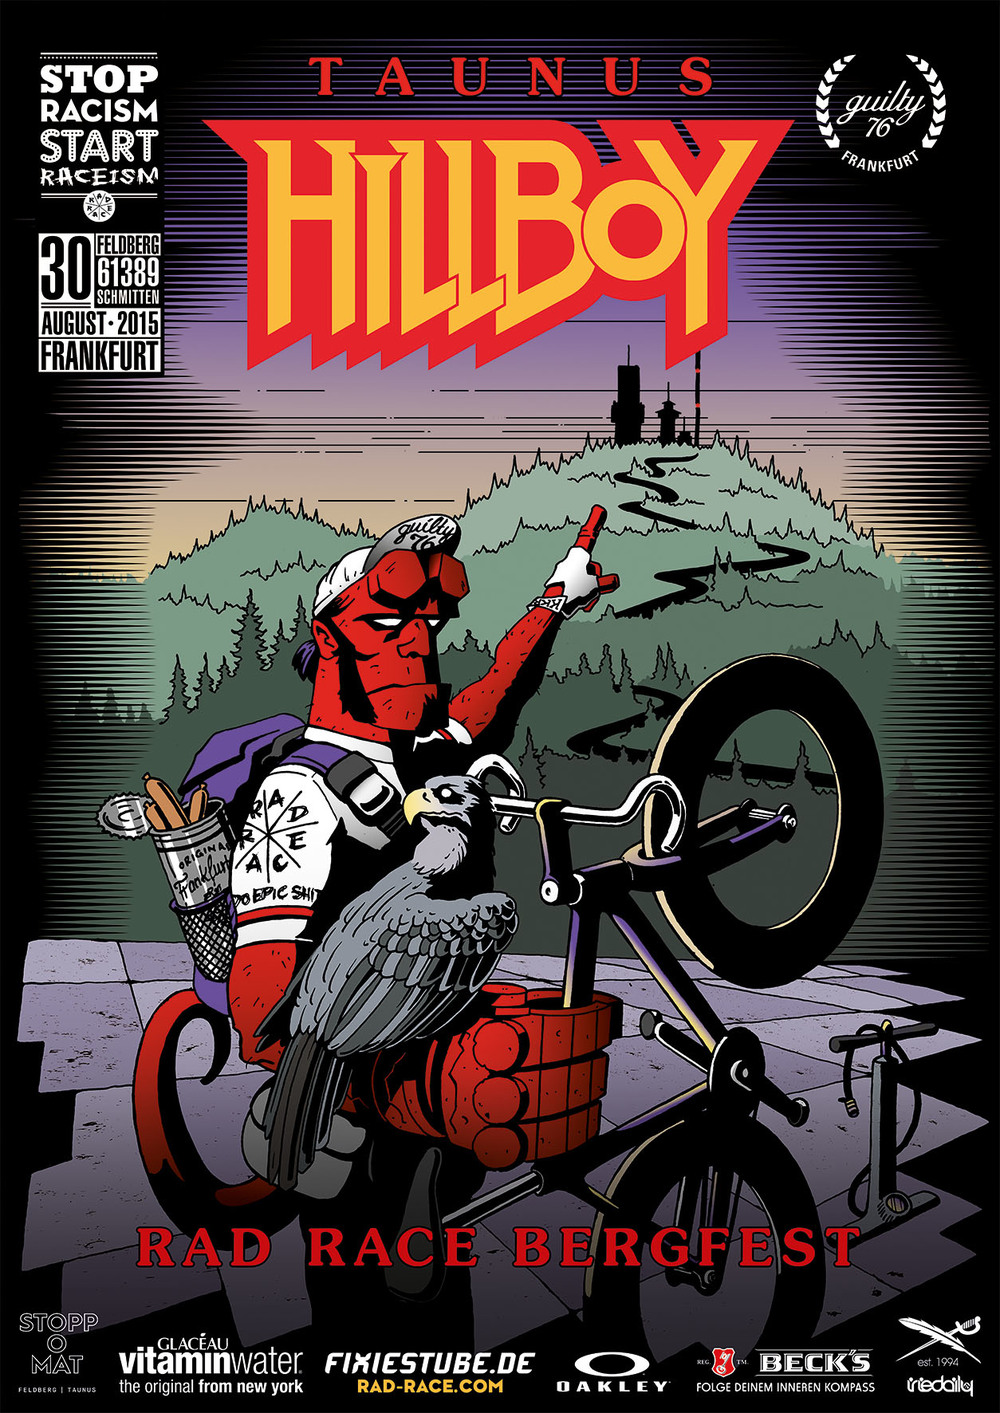 RAD RACE Bergfest Hillboy 2015